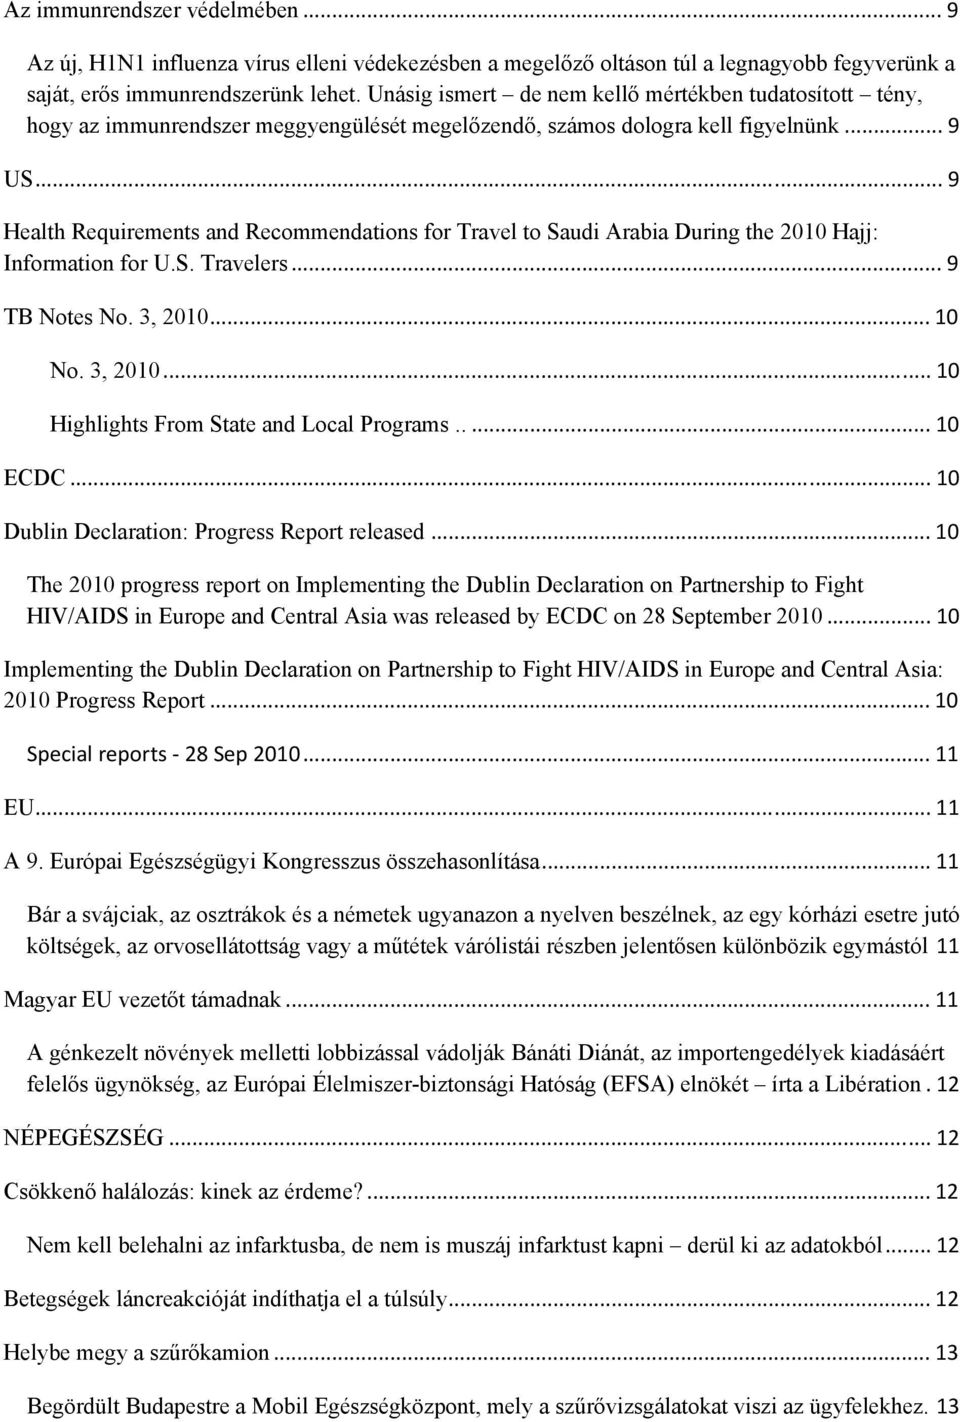 .. 9 Health Requirements and Recommendations for Travel to Saudi Arabia During the 2010 Hajj: Information for U.S. Travelers... 9 TB Notes No. 3, 2010... 10 No. 3, 2010... 10 Highlights From State and Local Programs.